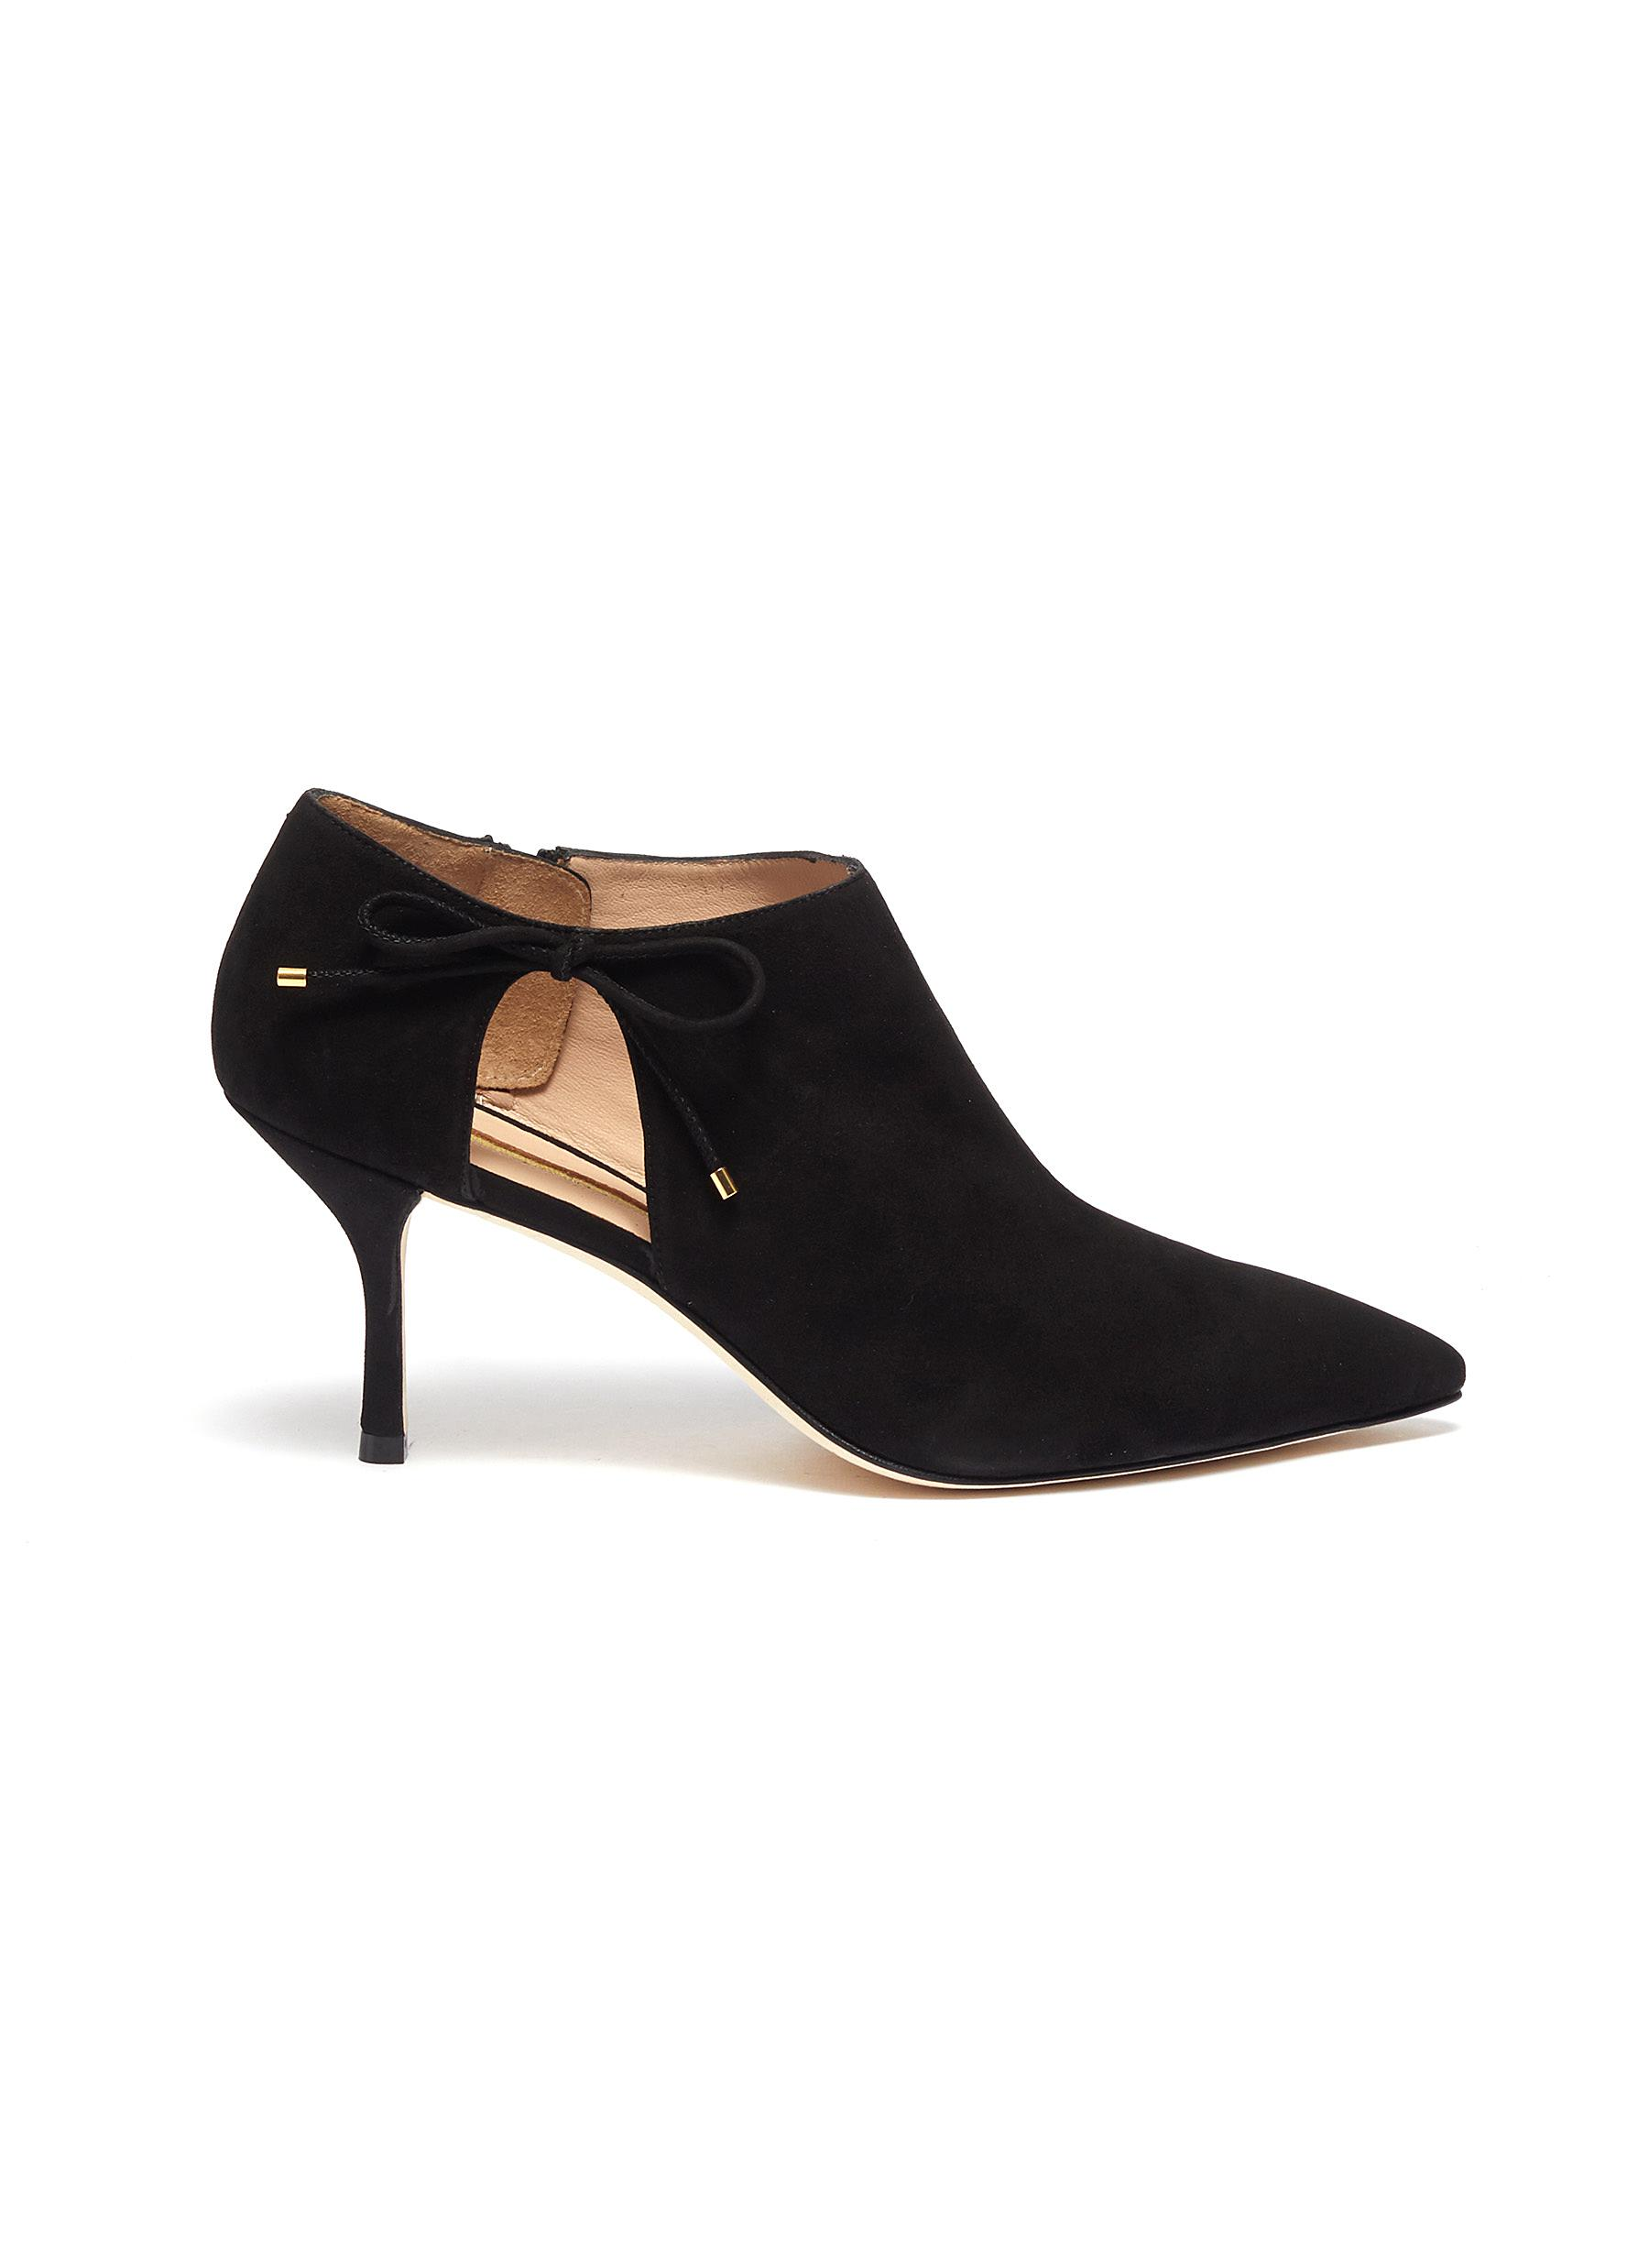 Avita cutout suede ankle boots by Stuart Weitzman